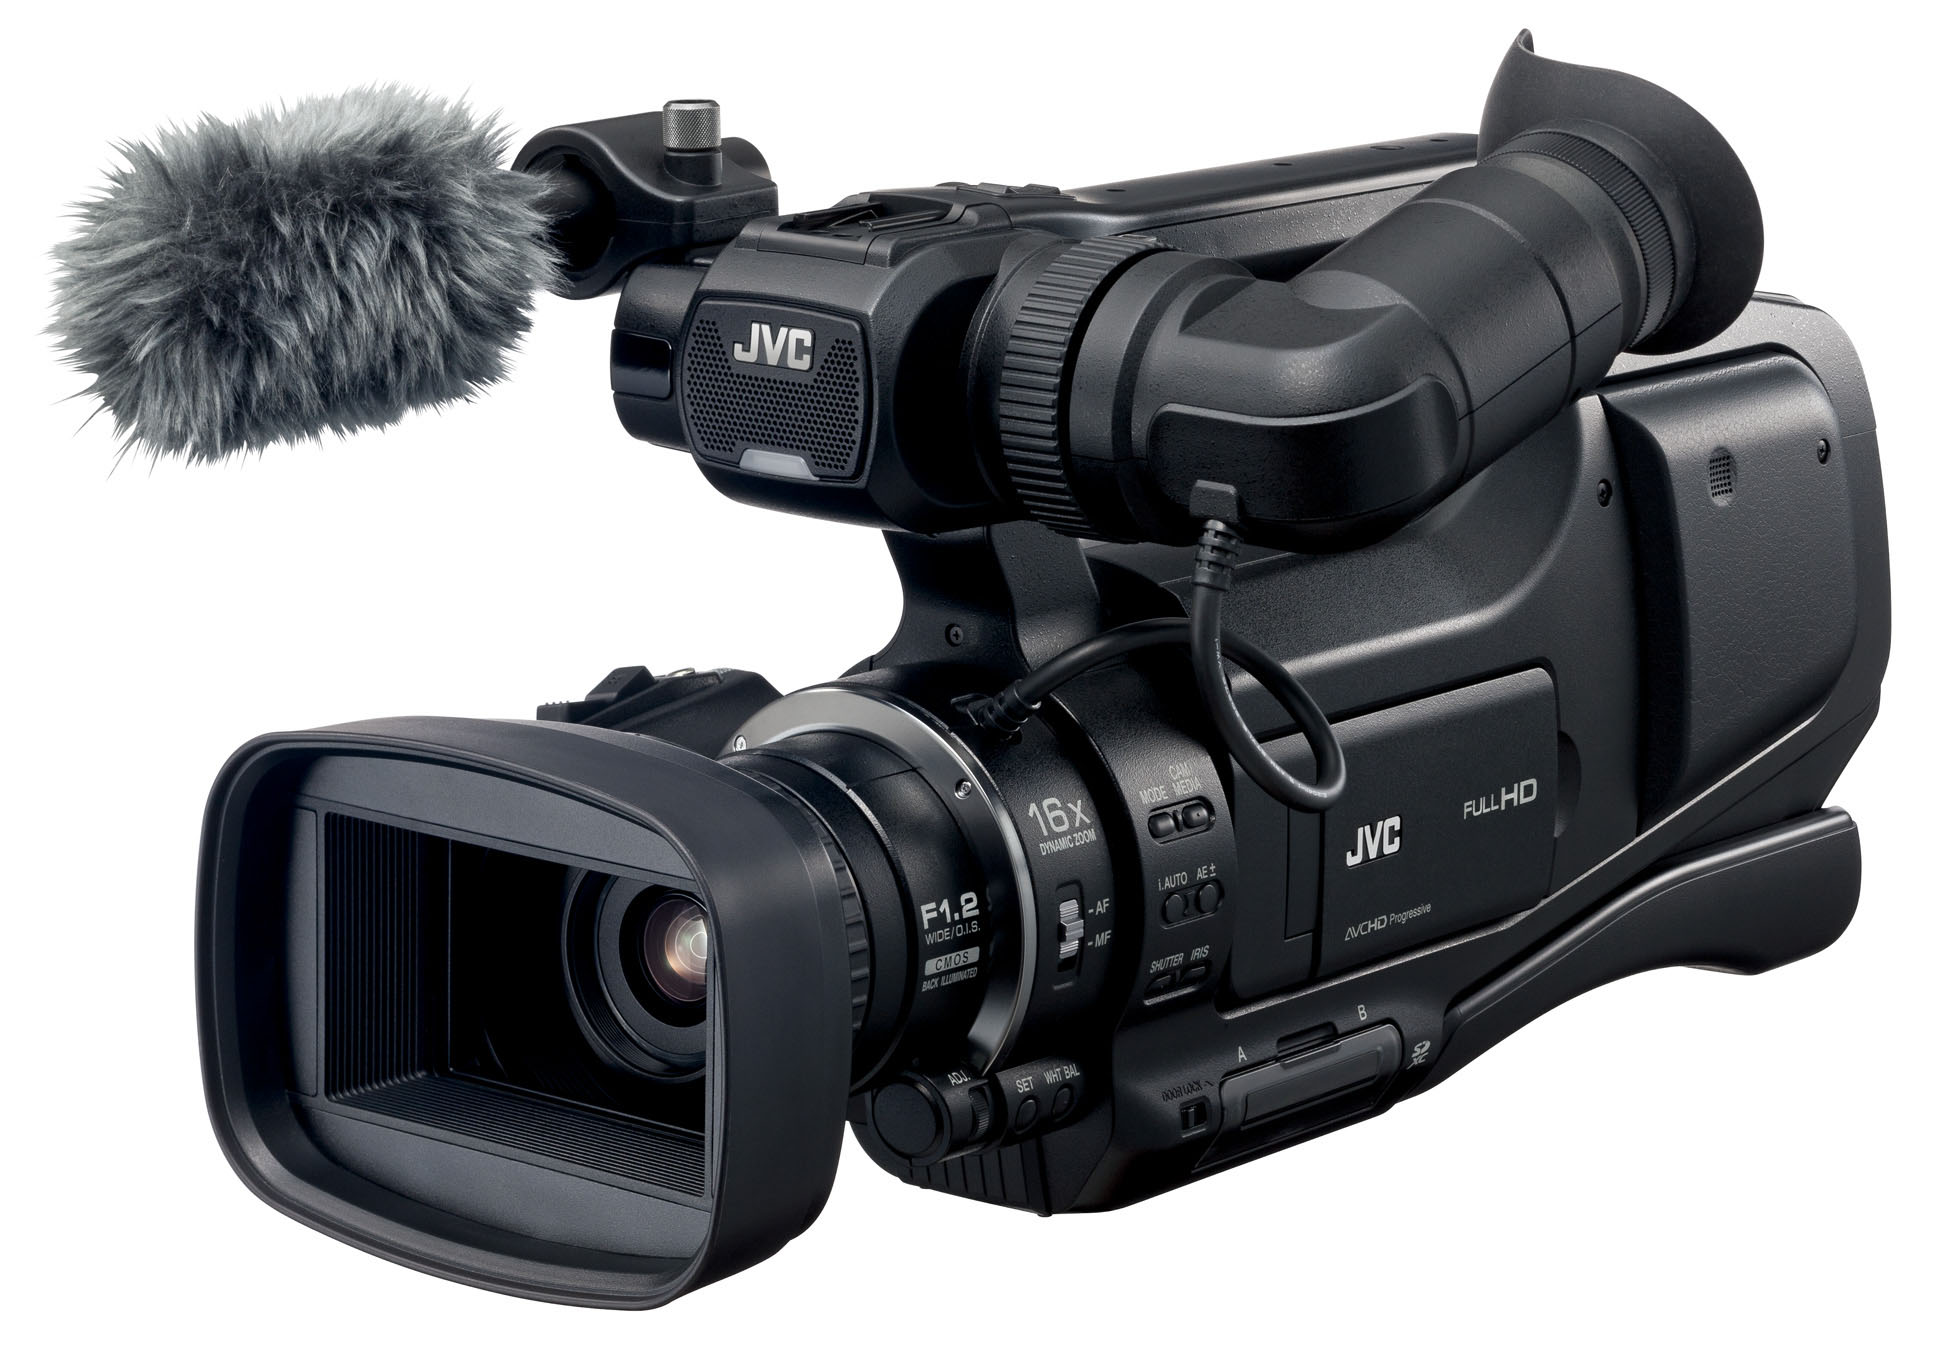 JVC's GY-HM70 shouldermount camcorder.